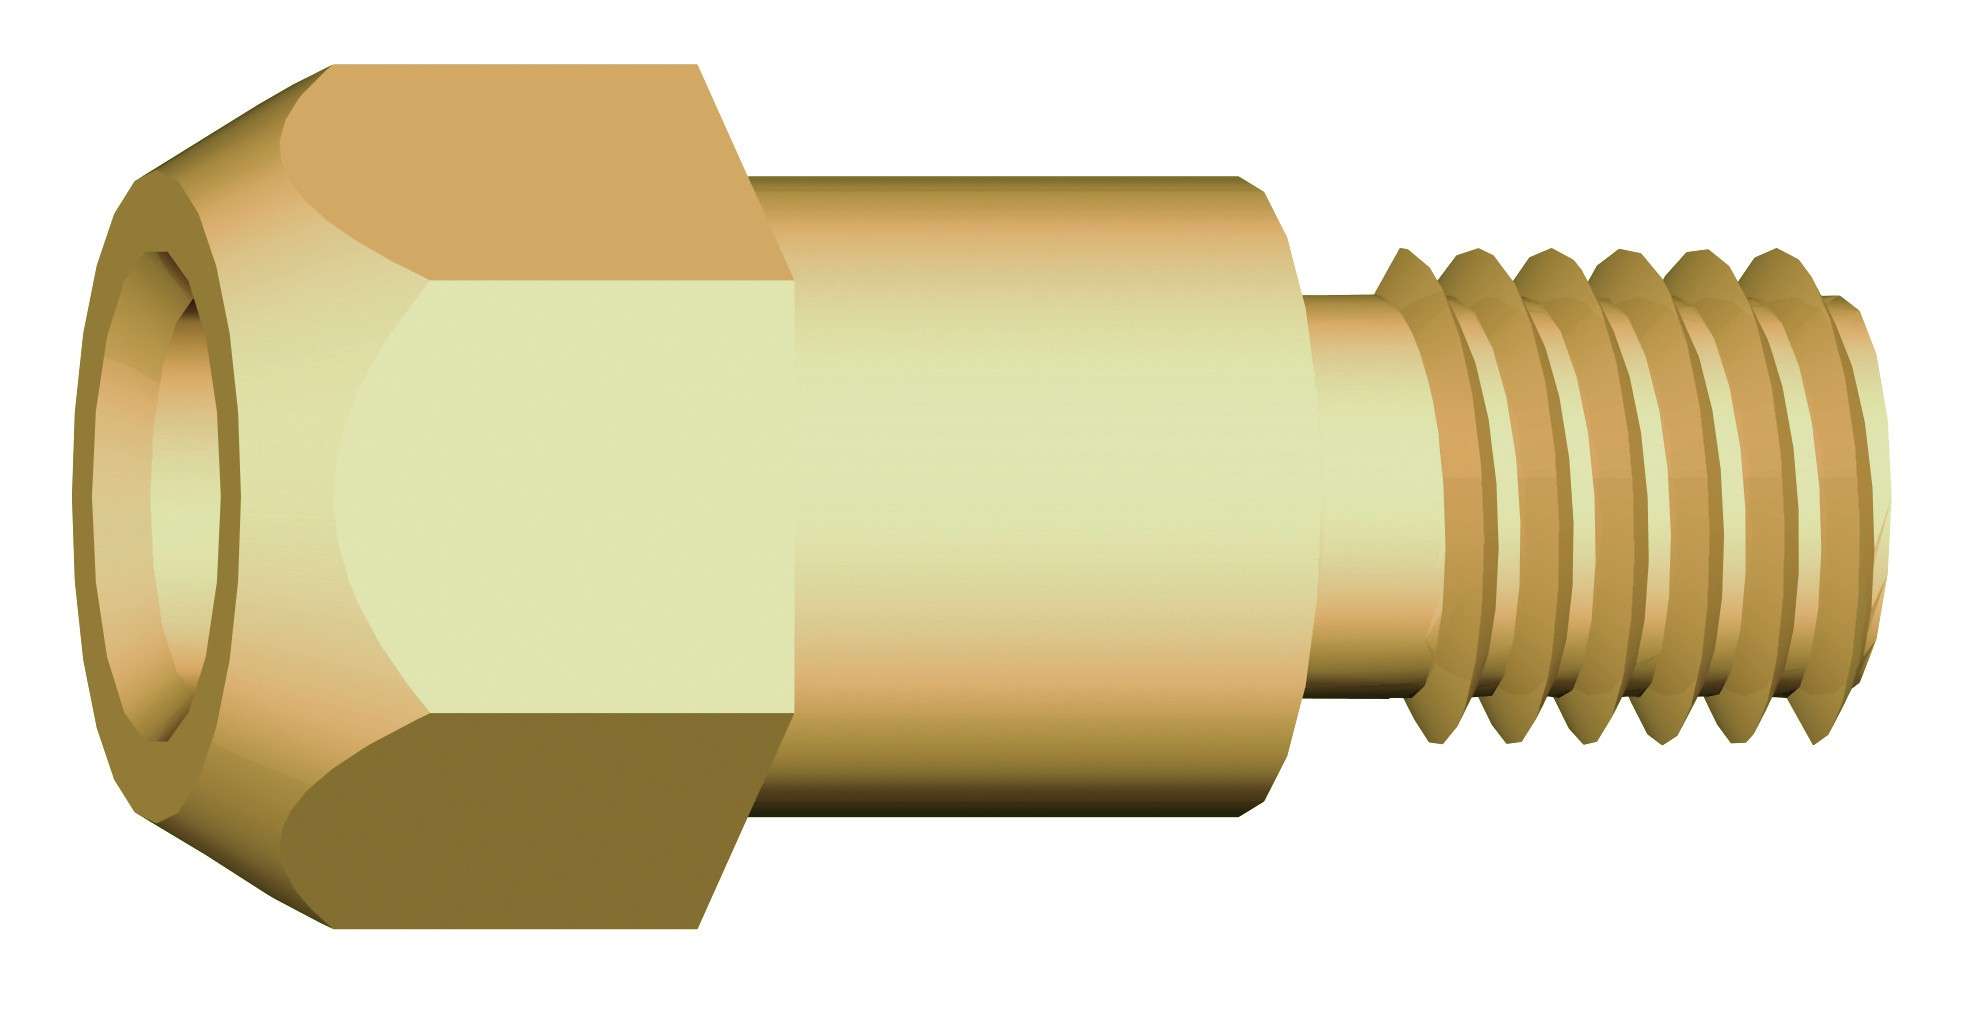 MB36 M8 Contact Tips